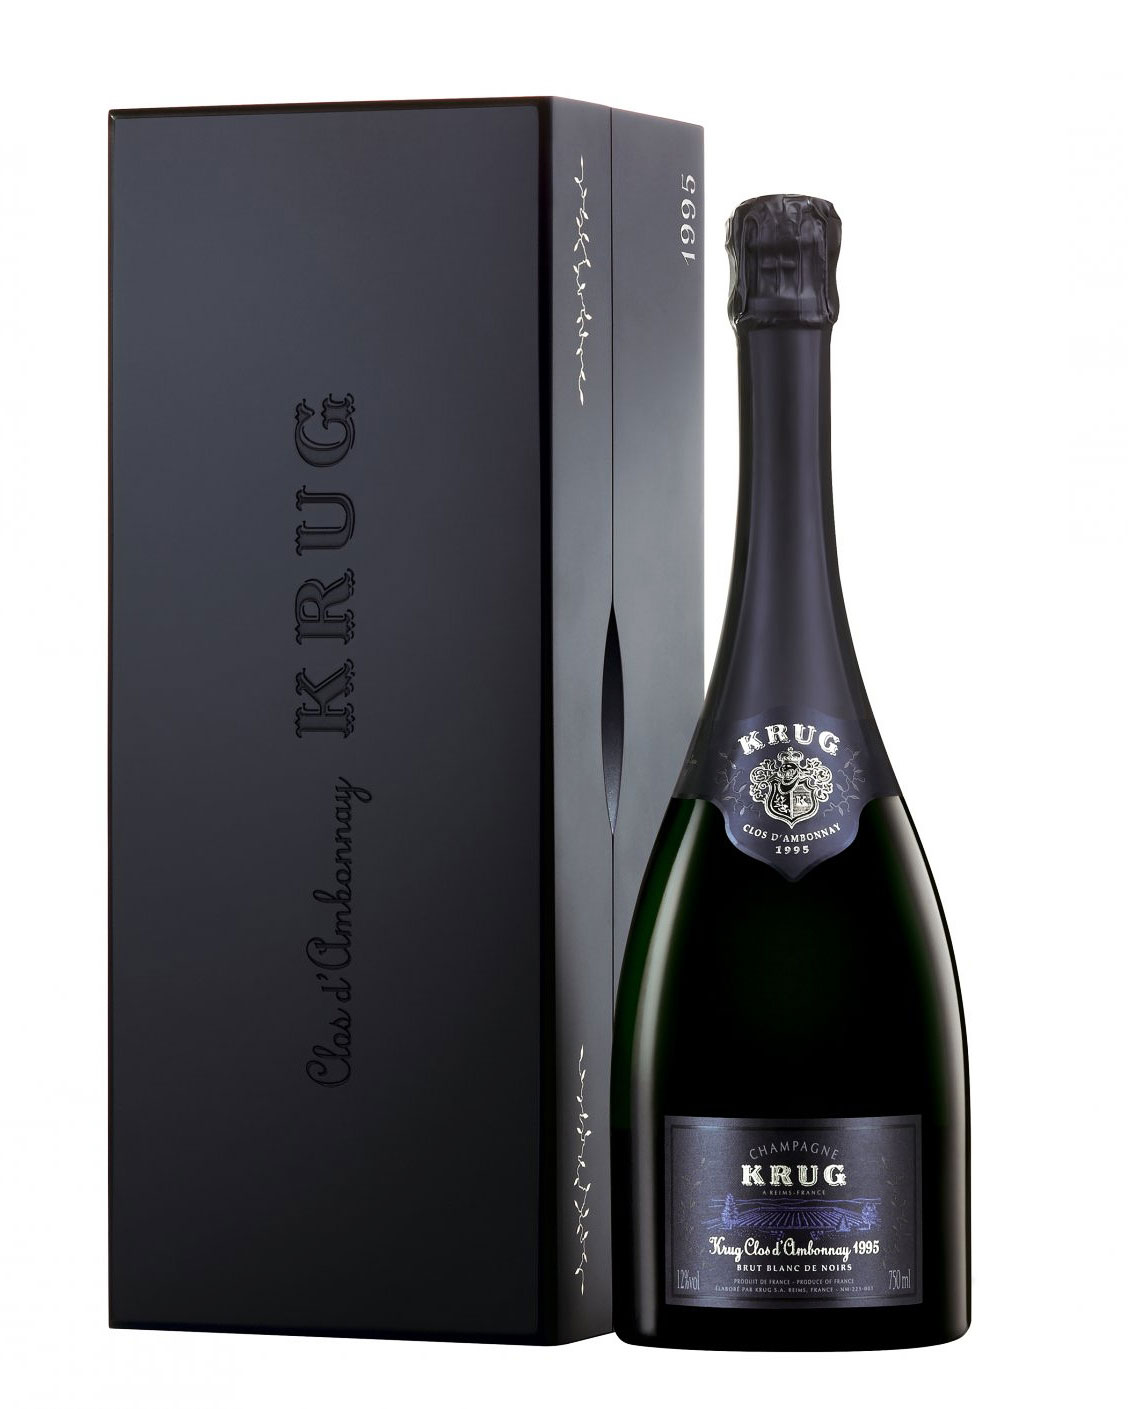 wedding-gifts-wine-search-bollinger-blanc-french-pinot-noir-0316.jpg